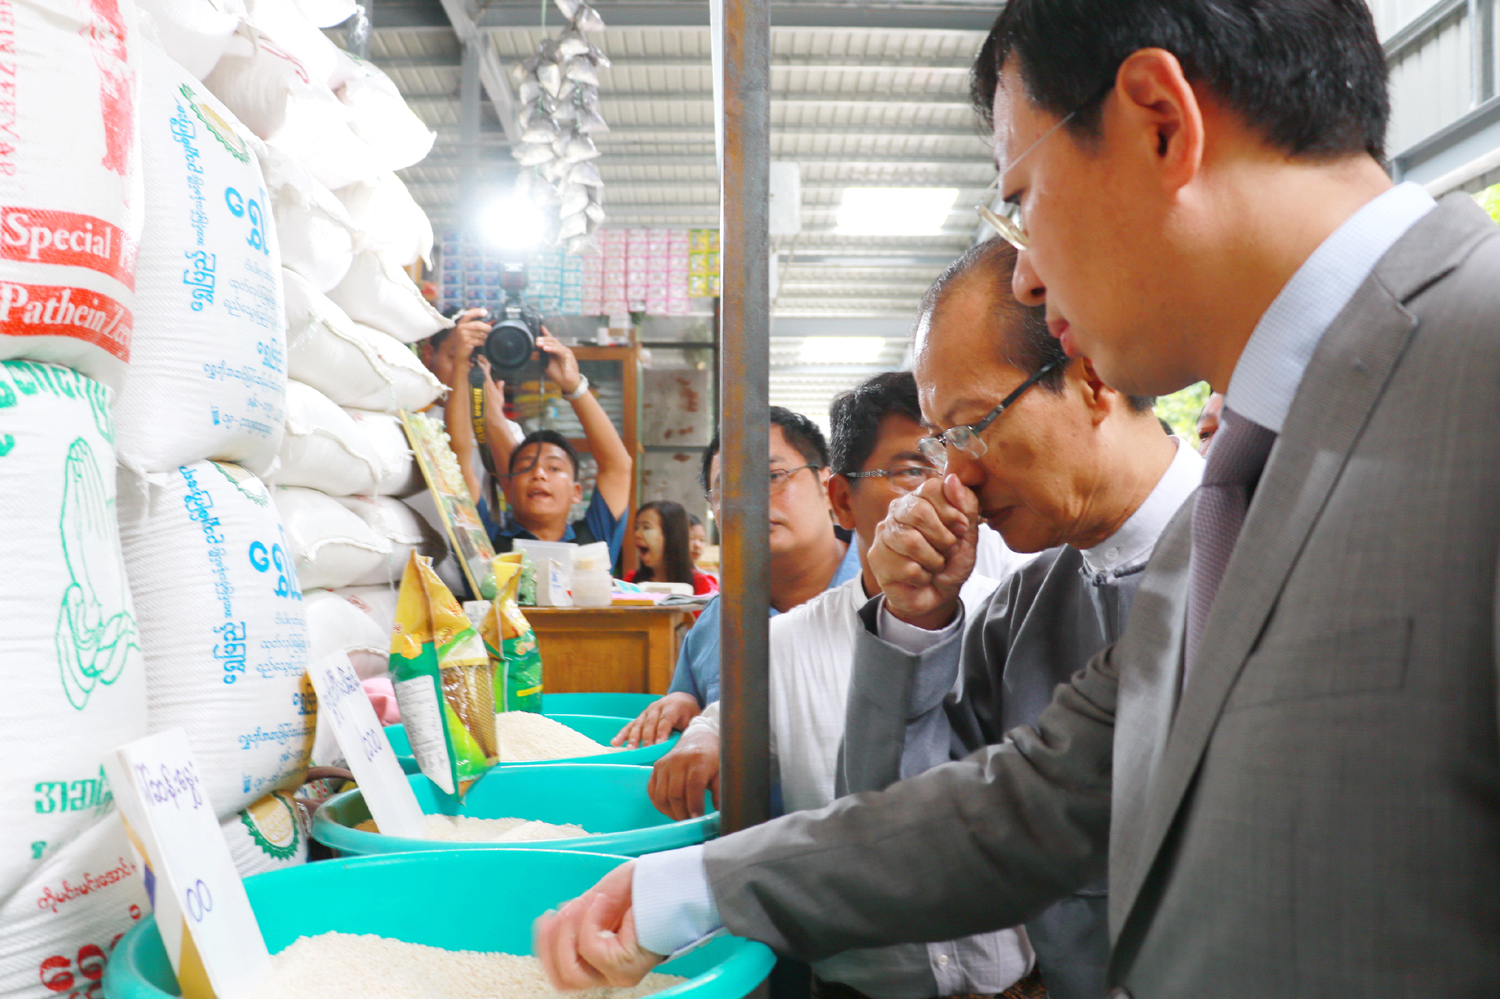 Chinese Ambassador to Myanmar, Hong Liang, and Chairman of Nay Pyi Taw Council, Dr. Myo Aung, visit a rice stall inside the new Thapyaygone Market on May 27, 2017. [Photo: China Plus/Tu Yun]